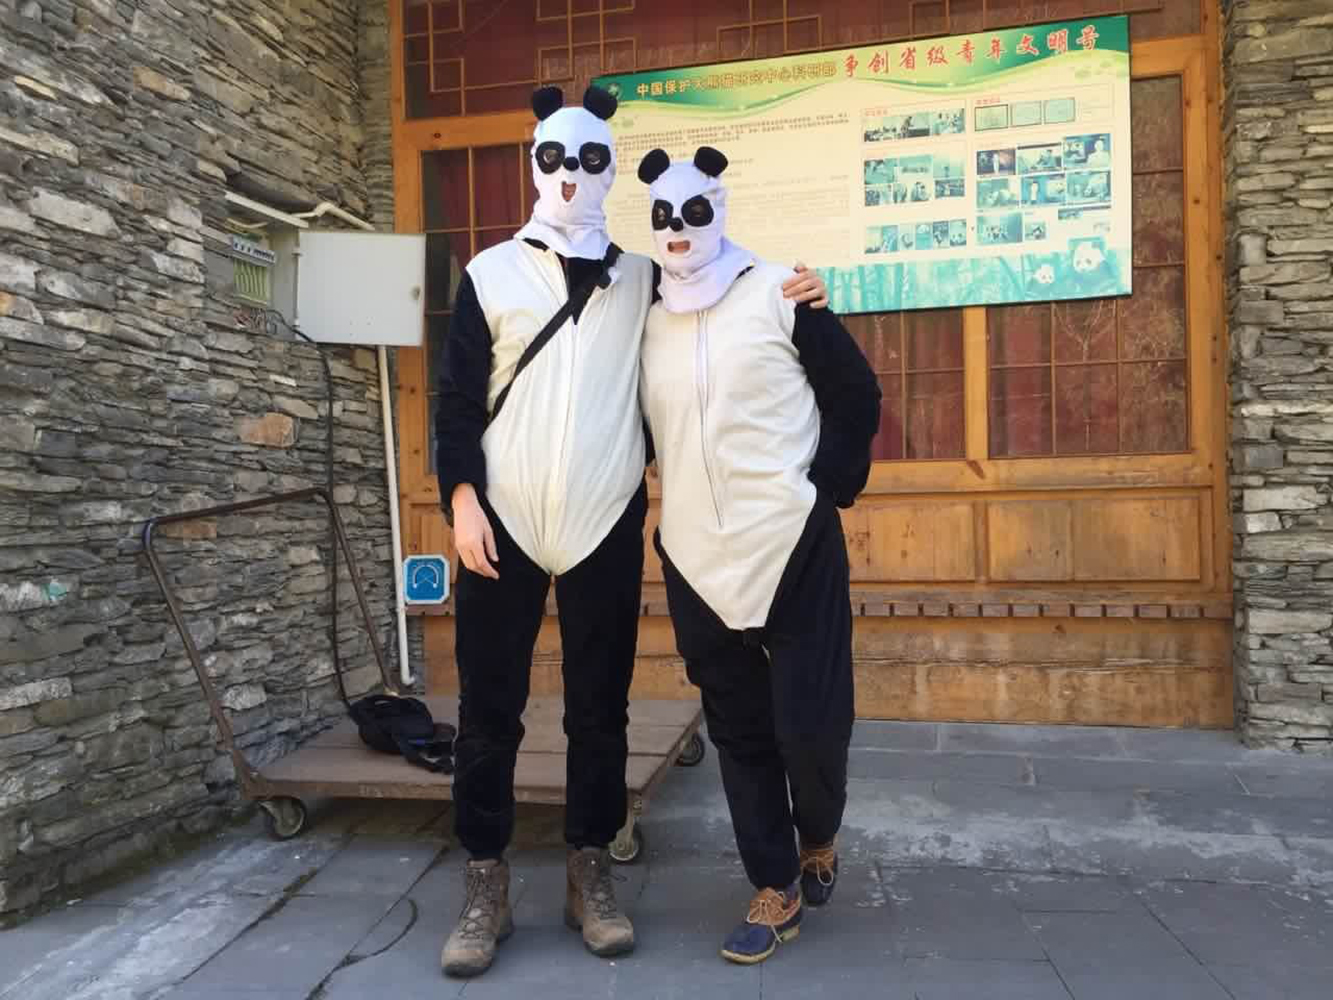 Photographer Adam Dean and TIME East Asia bureau chief Hannah Beech wearing panda costumes while they report on the pandas at the Hetaoping Research and Conservation Center for the Giant Panda in Wolong National Natural Reserve, Sichuan province, China, on Dec. 1, 2015